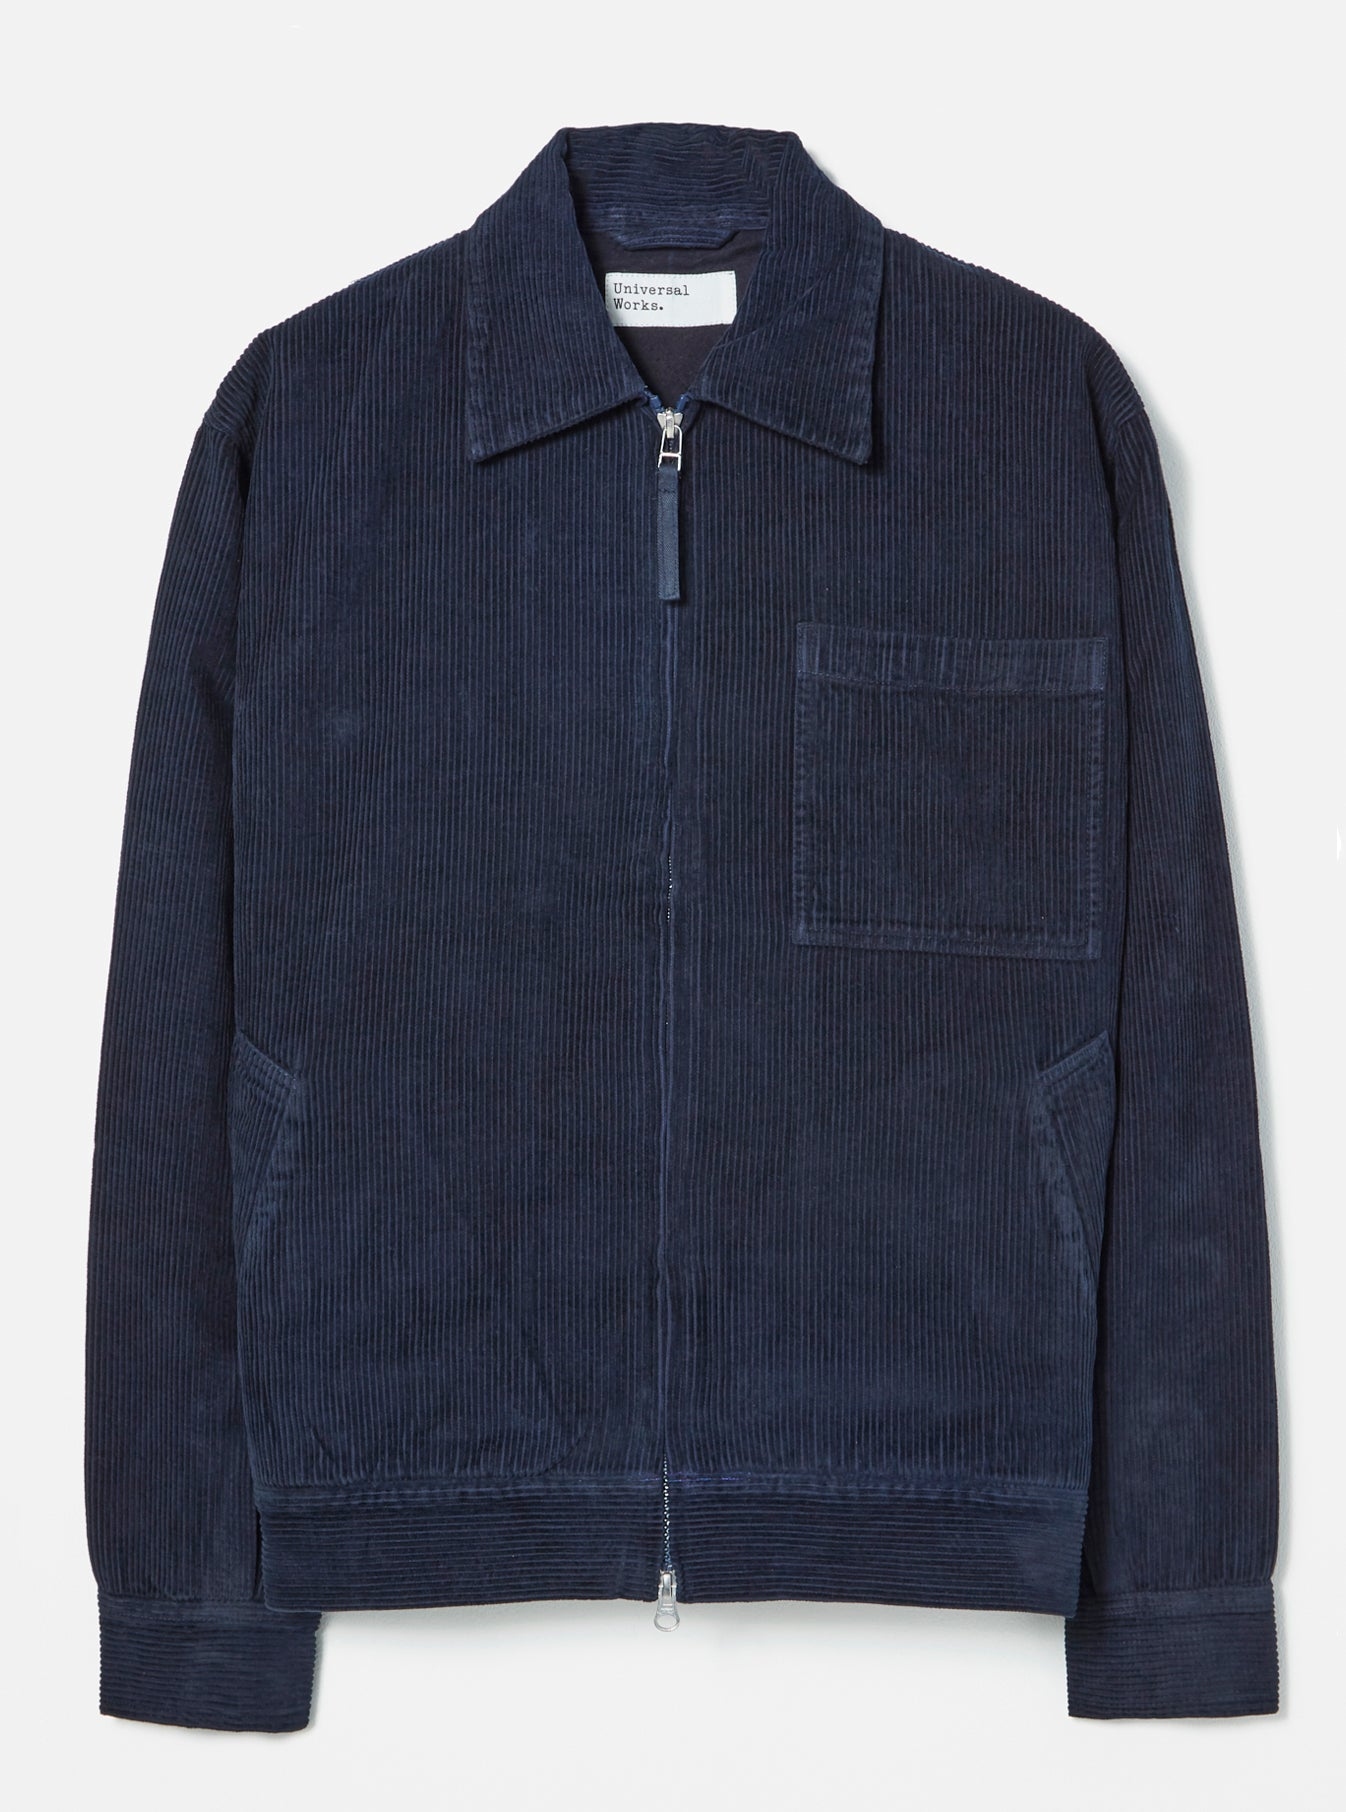 Universal Works Rose Bowl Jacket in Navy 8 Wale Cord